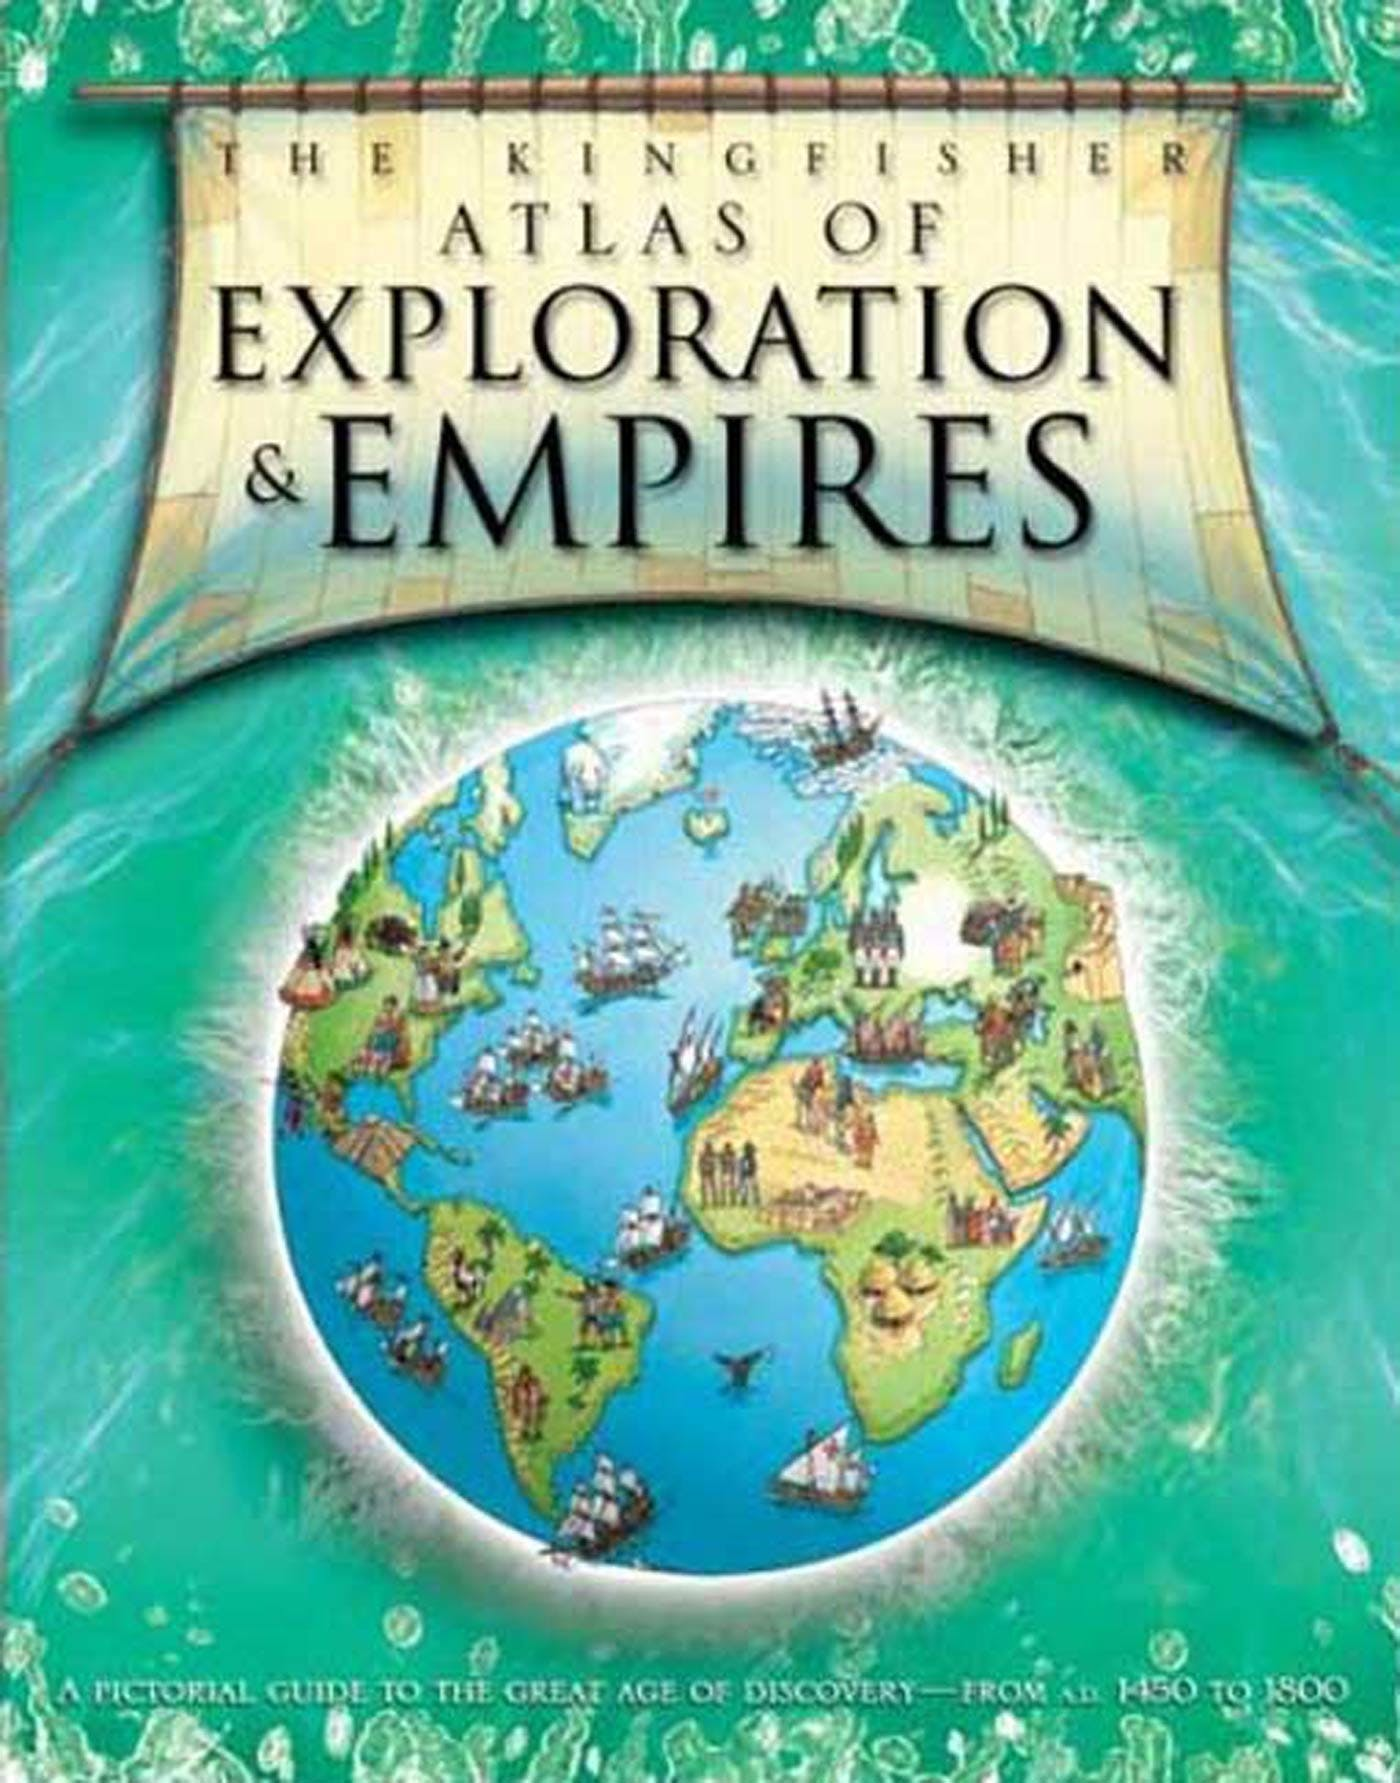 Image of The Kingfisher Atlas of Exploration and Empires